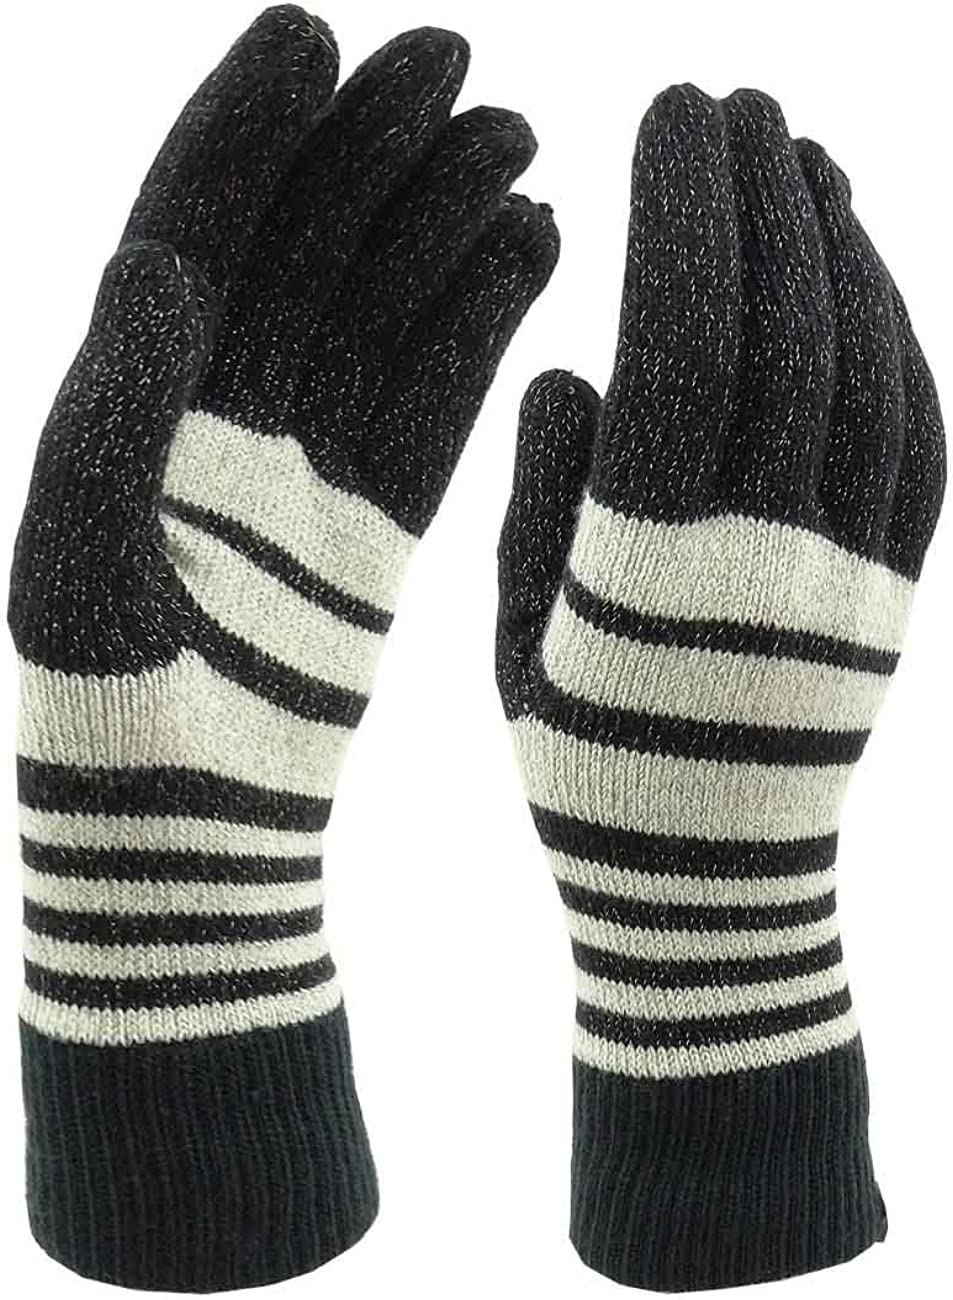 ISO Isotoner Women's Striped Black Heathered Light Weight Gloves, One Size